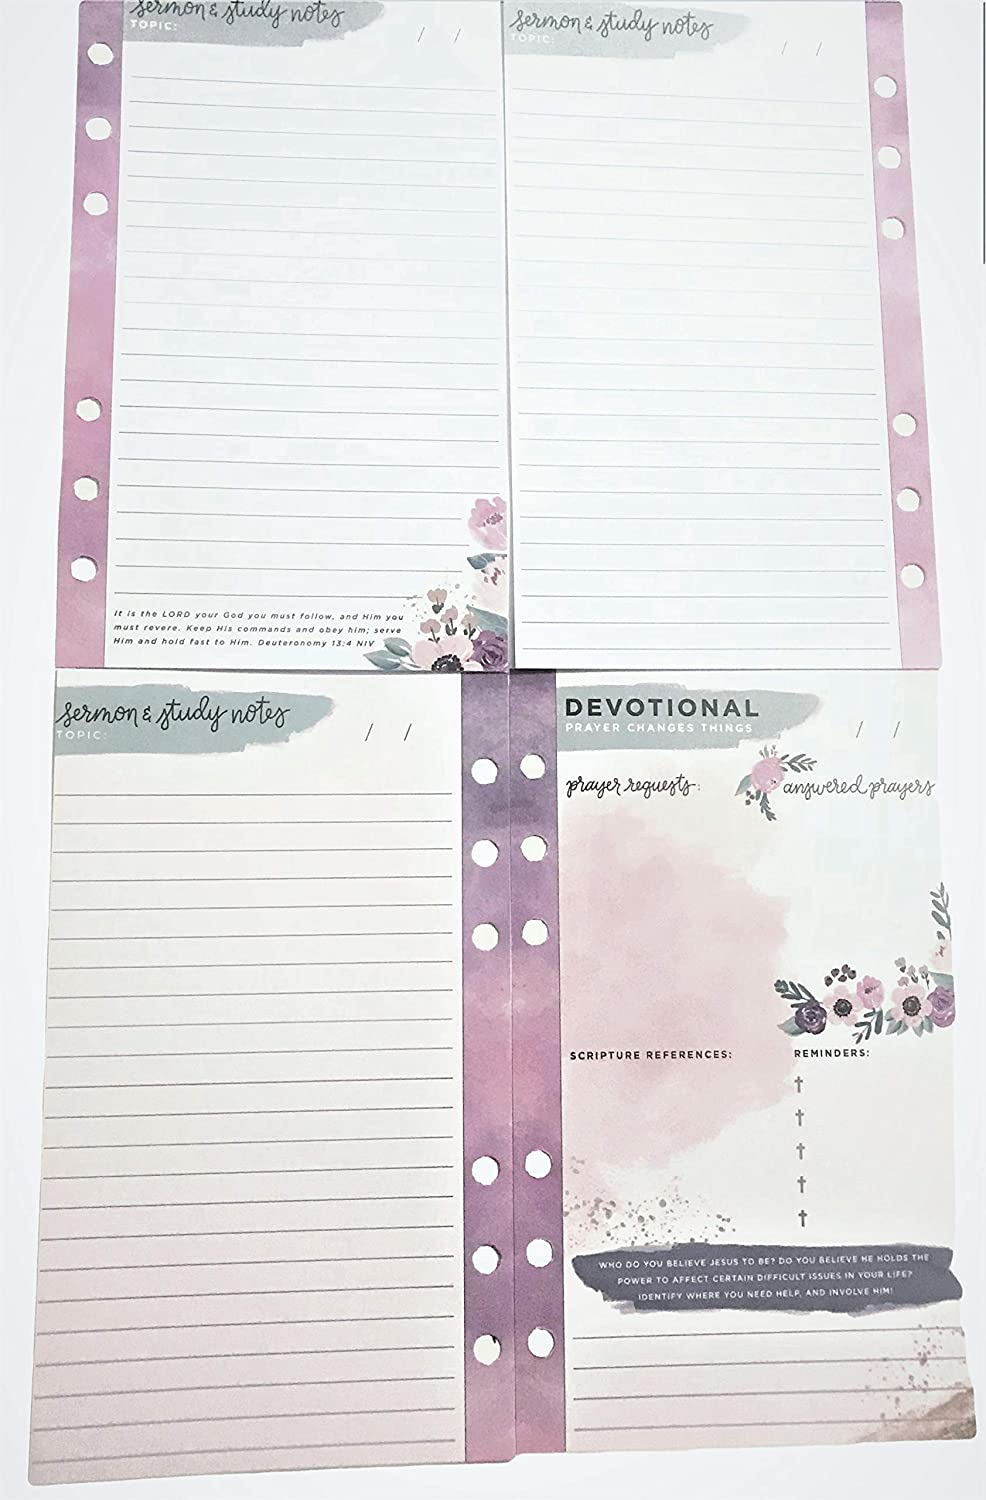 Devotional Purple Floral Planner Pages, 6 Ring Sermon Notes Prayer Requests  Answered Scripture